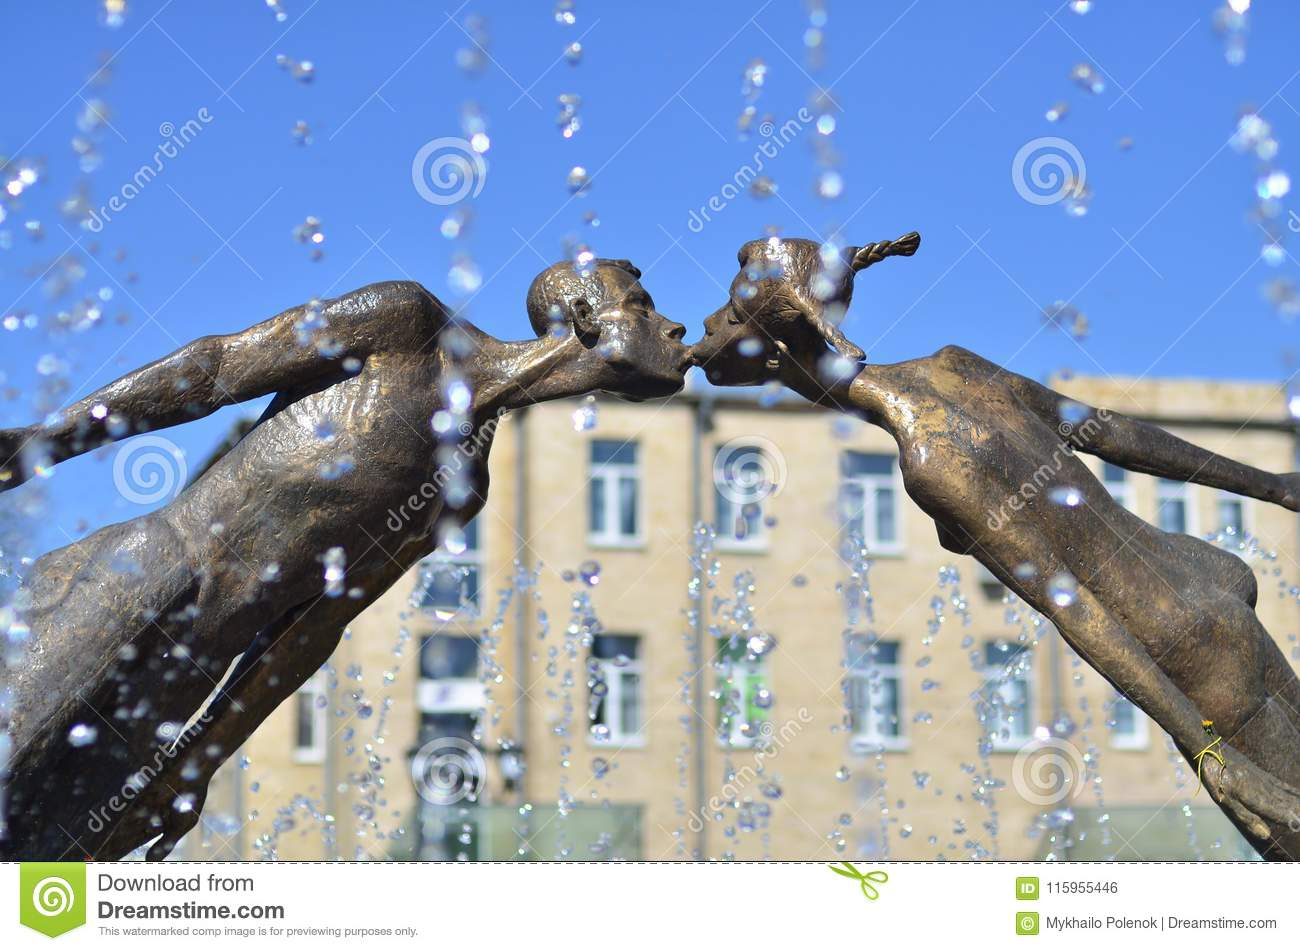 Monument to lovers in Kharkov, Ukraine - is an arch formed by the flying, fragile figures of a young man and a girl, merged into